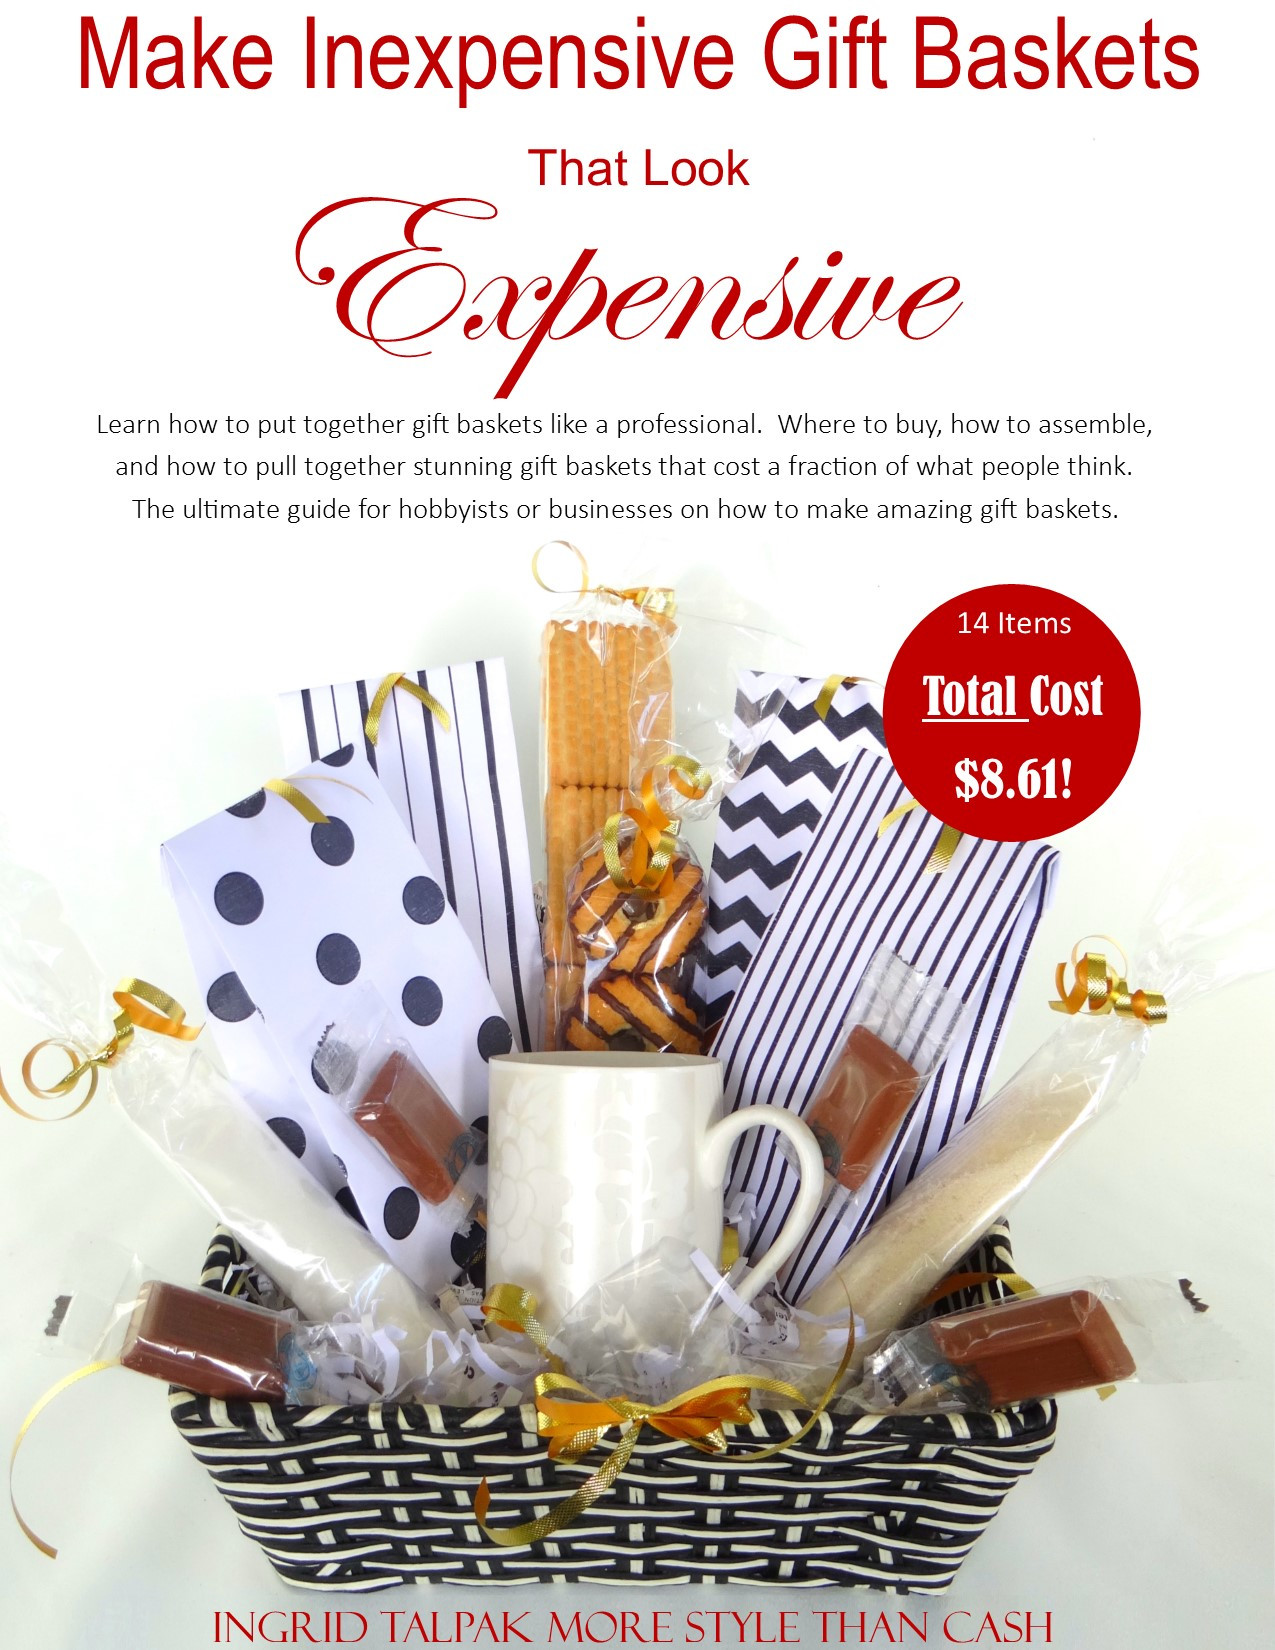 Best ideas about Inexpensive Gift Baskets Ideas . Save or Pin Make Inexpensive Gift Baskets that Look Expensive Book Now.